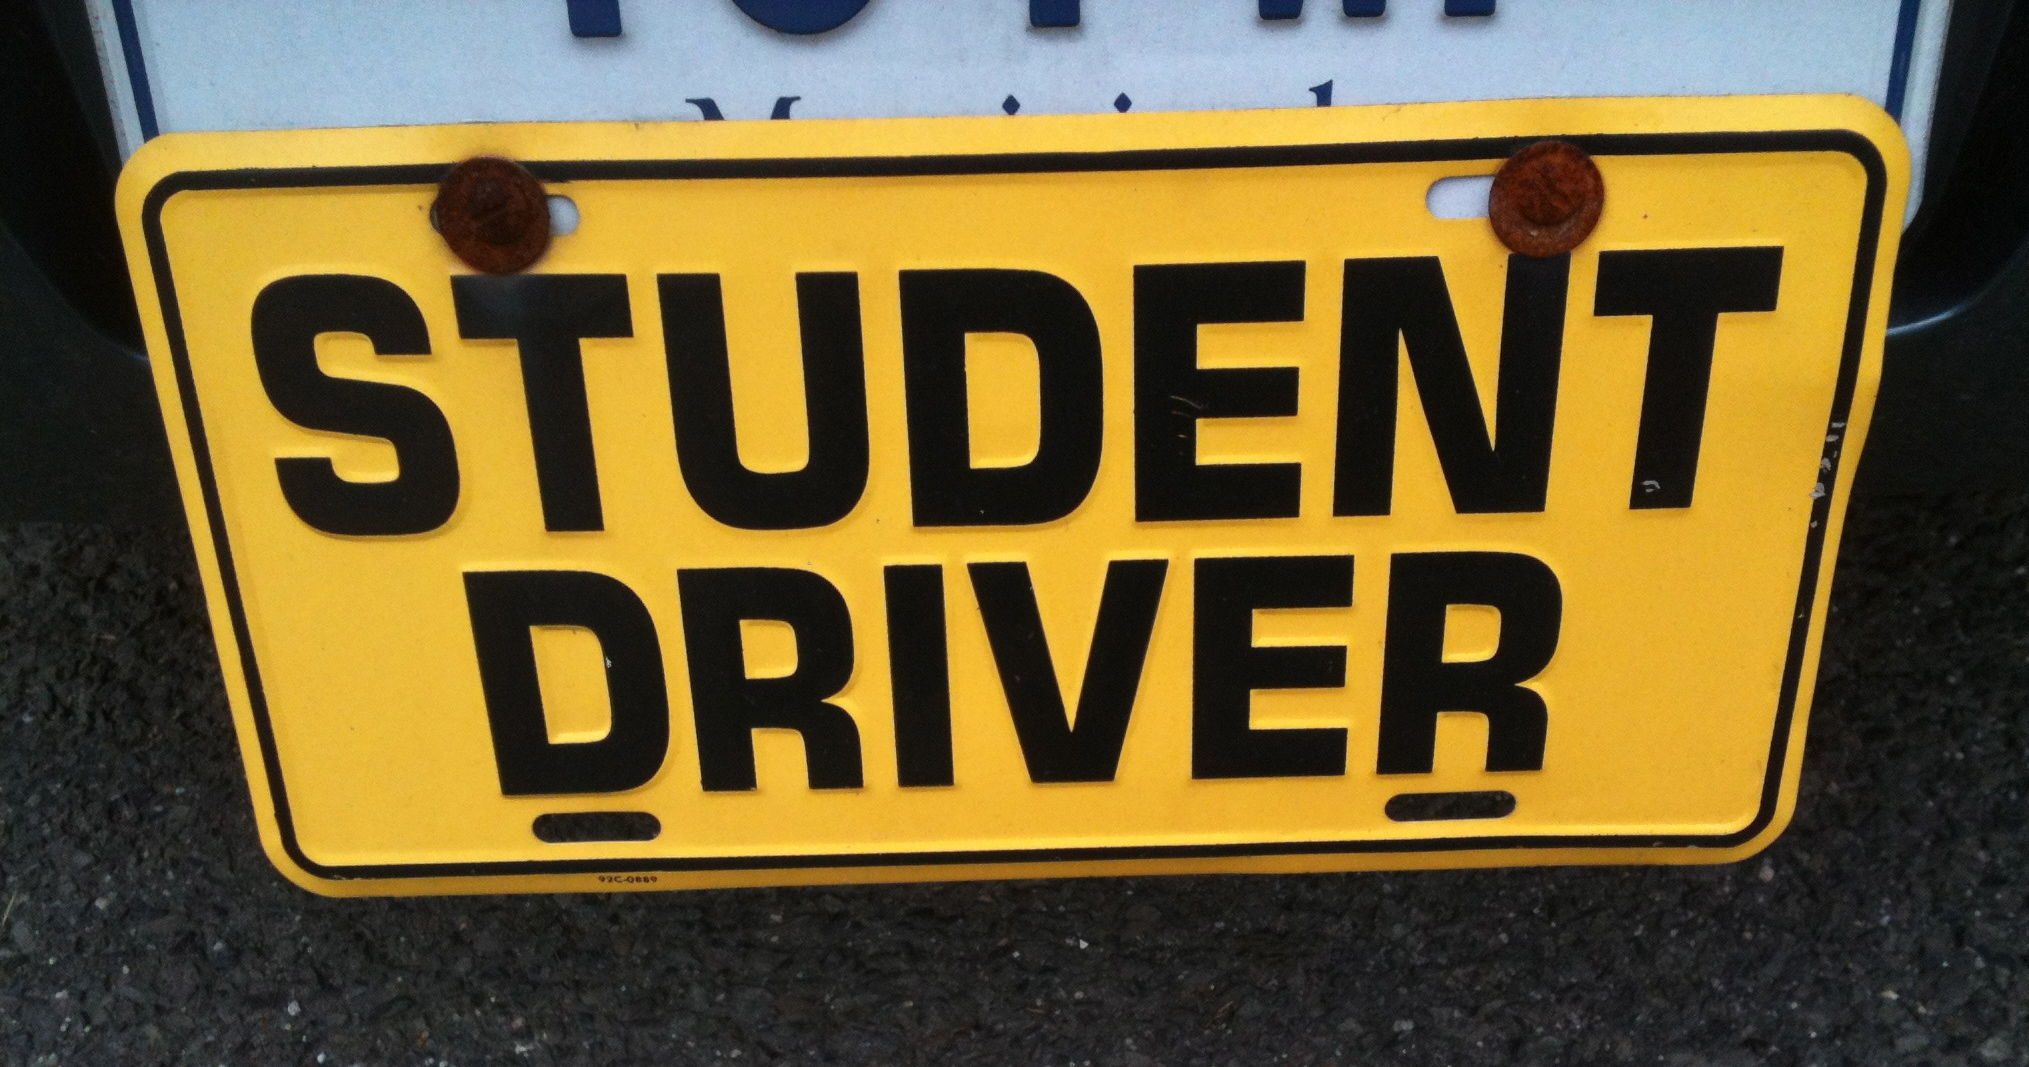 Can You Pass The Basic Driving Test That Hundreds Have